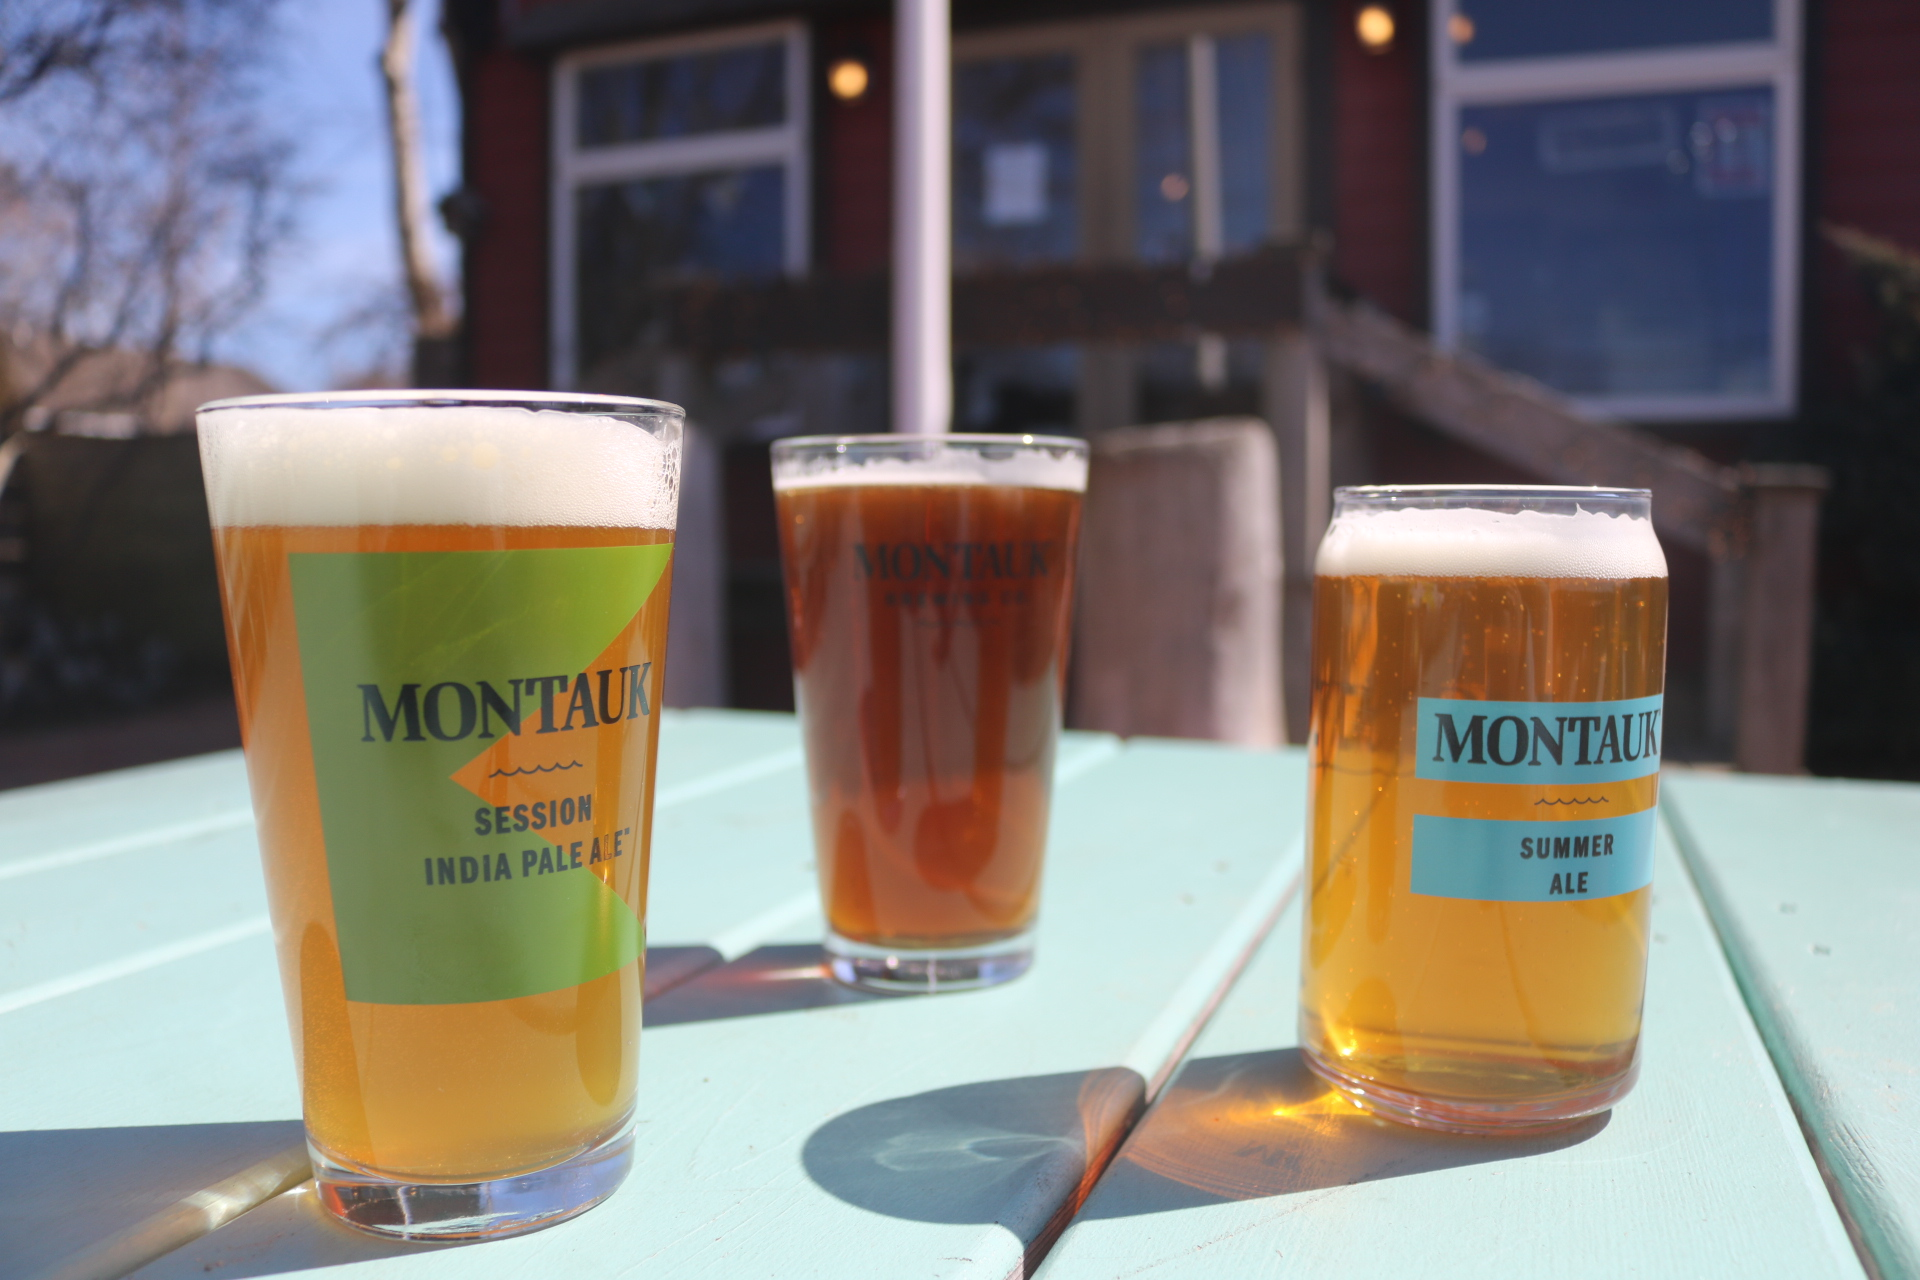 Montauk Brewing Company summer ale